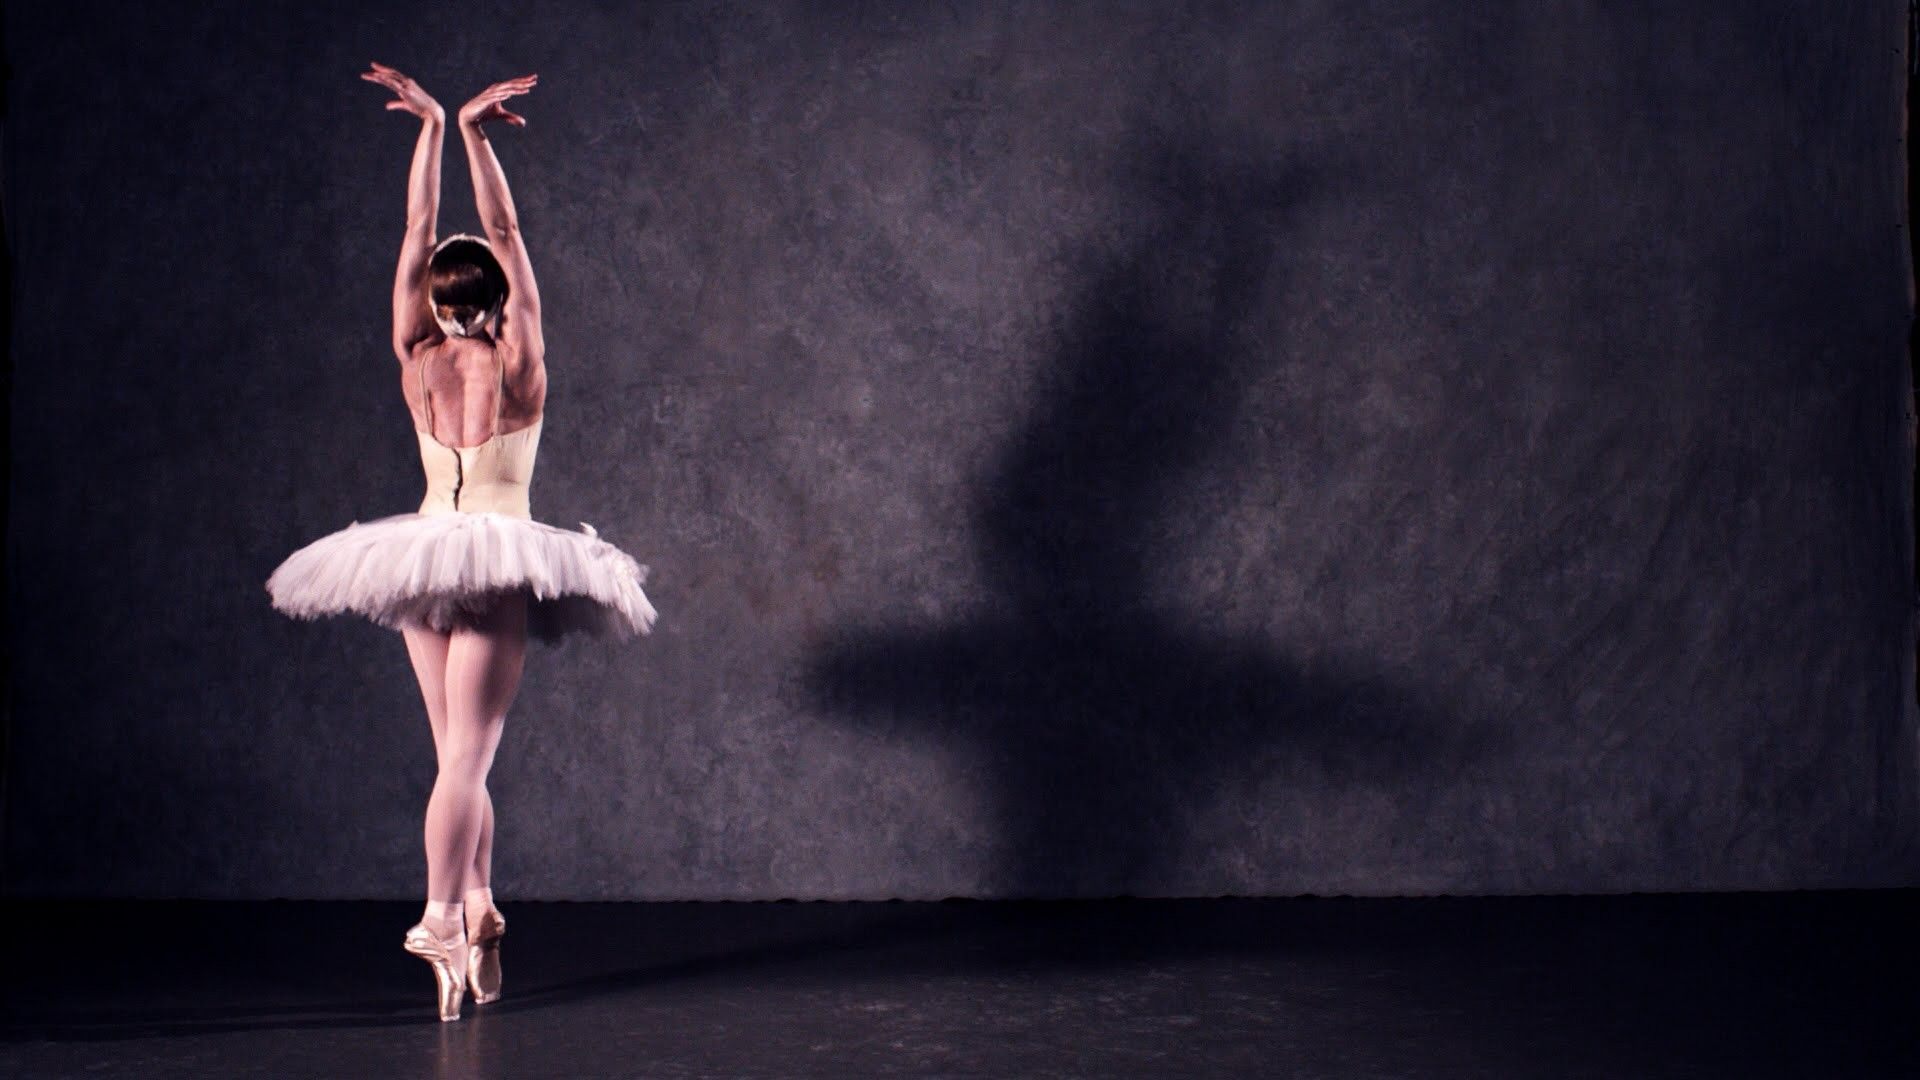 Ballet Dance Wallpapers With Hd Desktop 1920x1080 Px 212 HD Wallpapers Download Free Images Wallpaper [1000image.com]